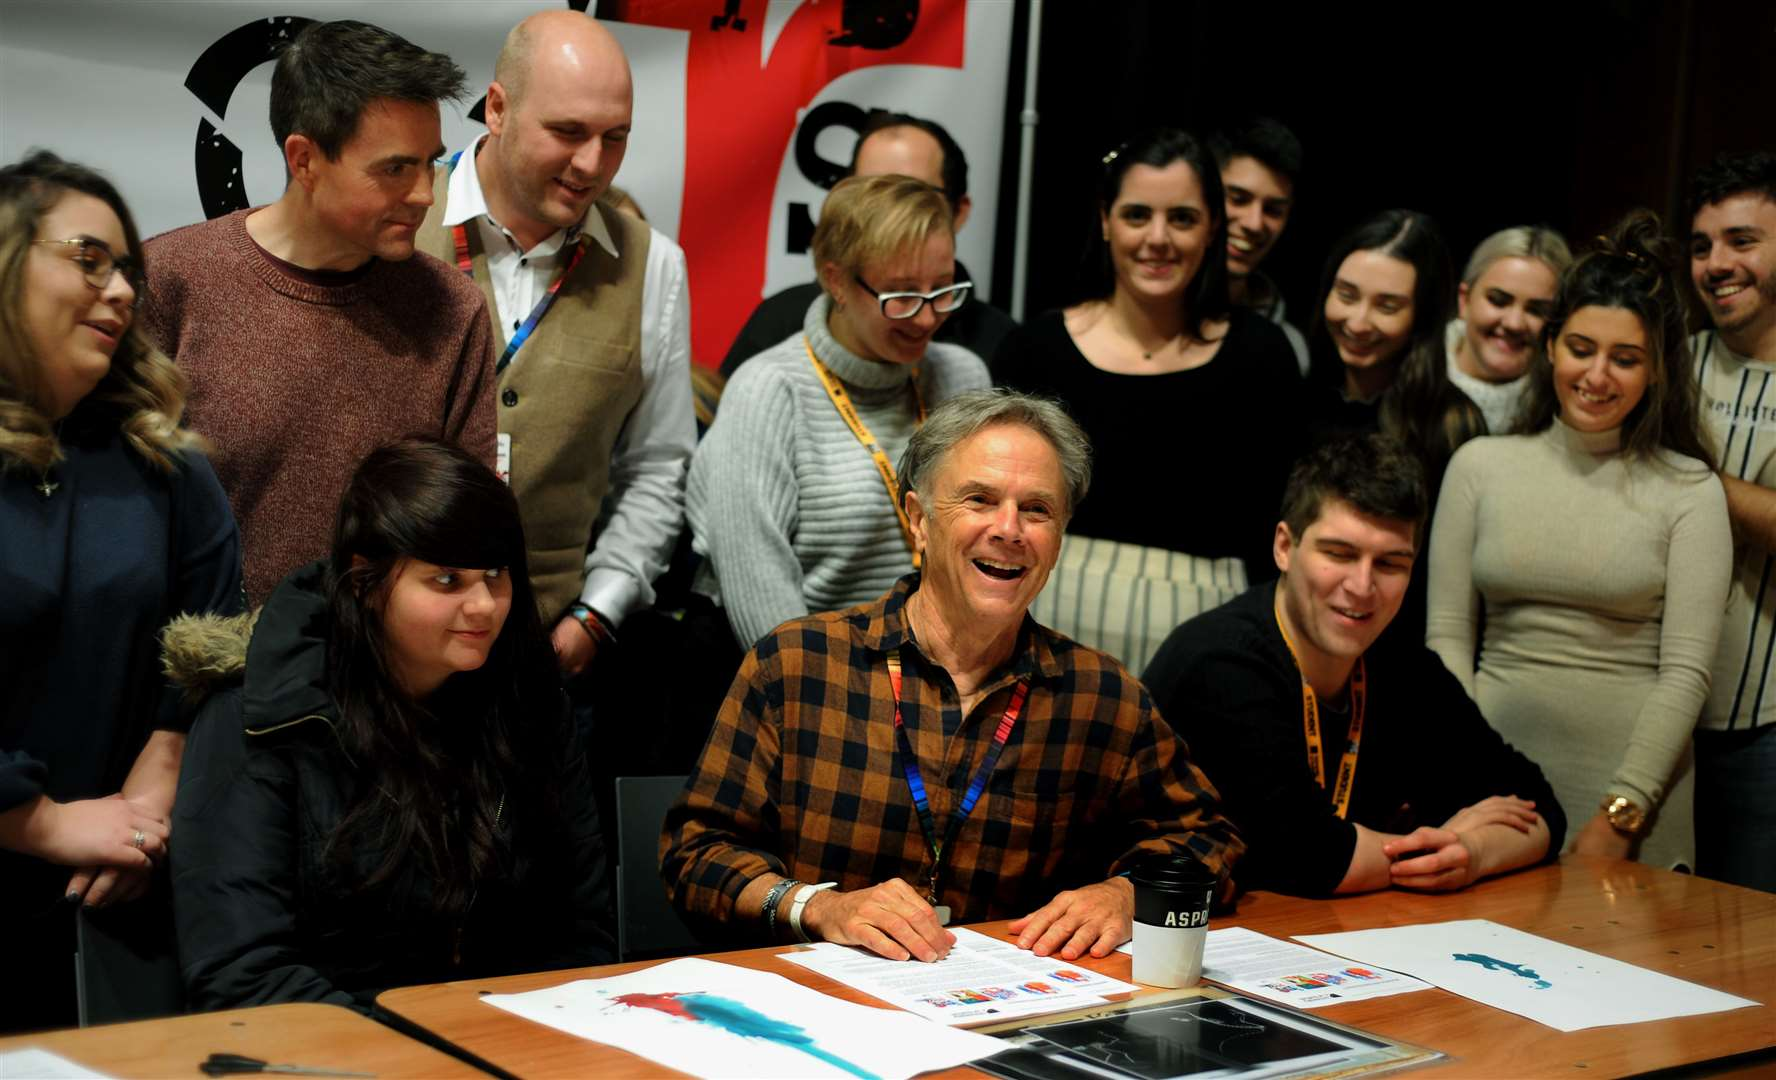 Award winning graphic artist David Carson with students at The Apex. Picture by Andy Abbott.